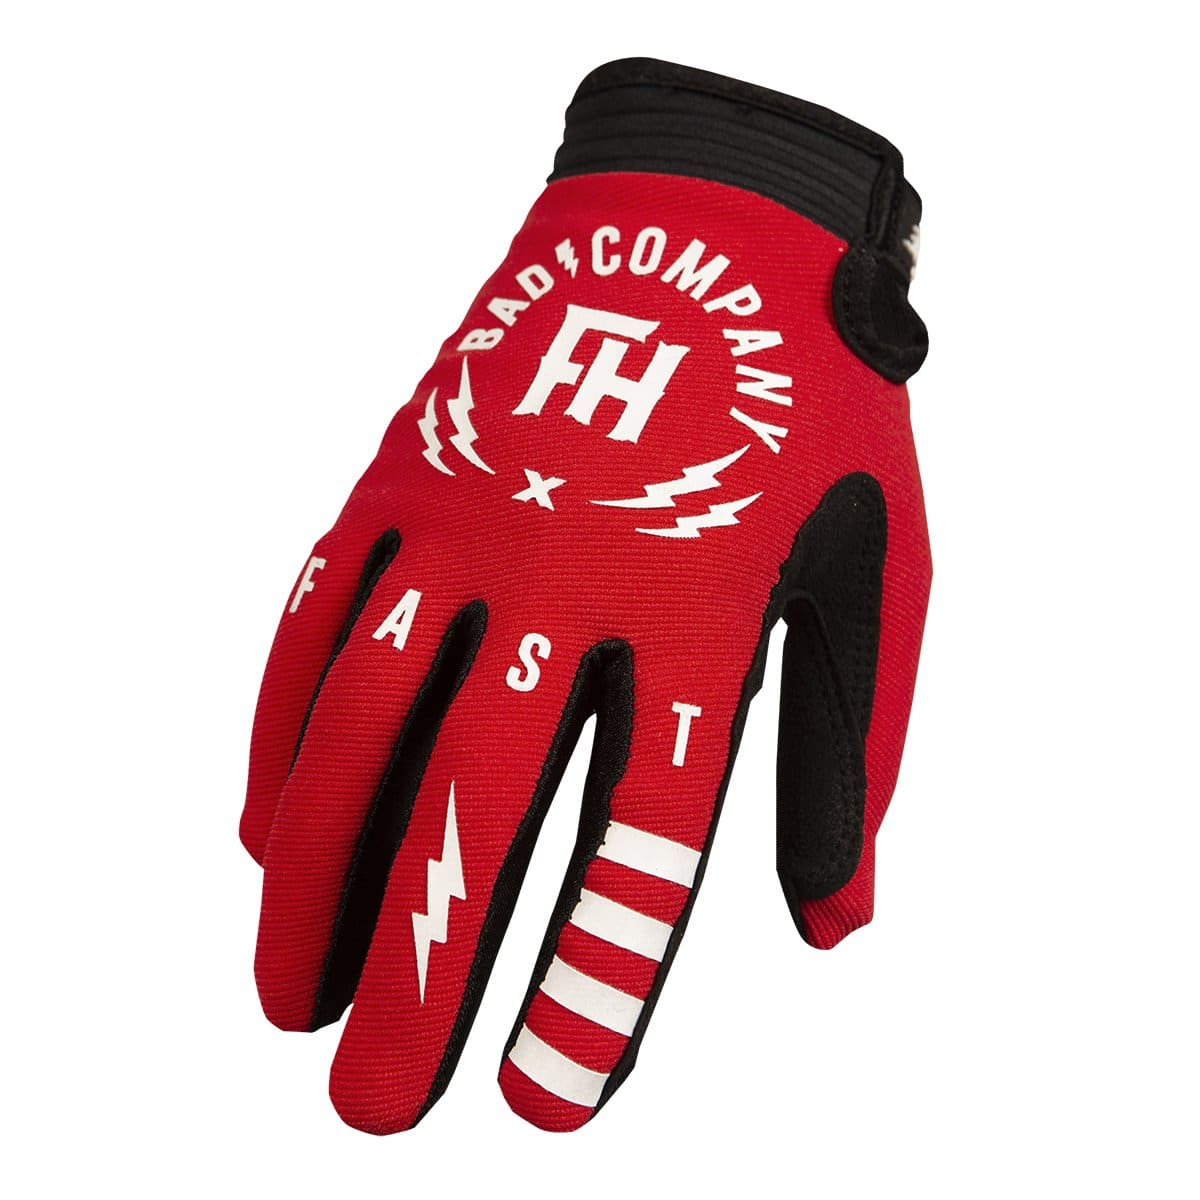 Speed Style Bad Company Glove - Red